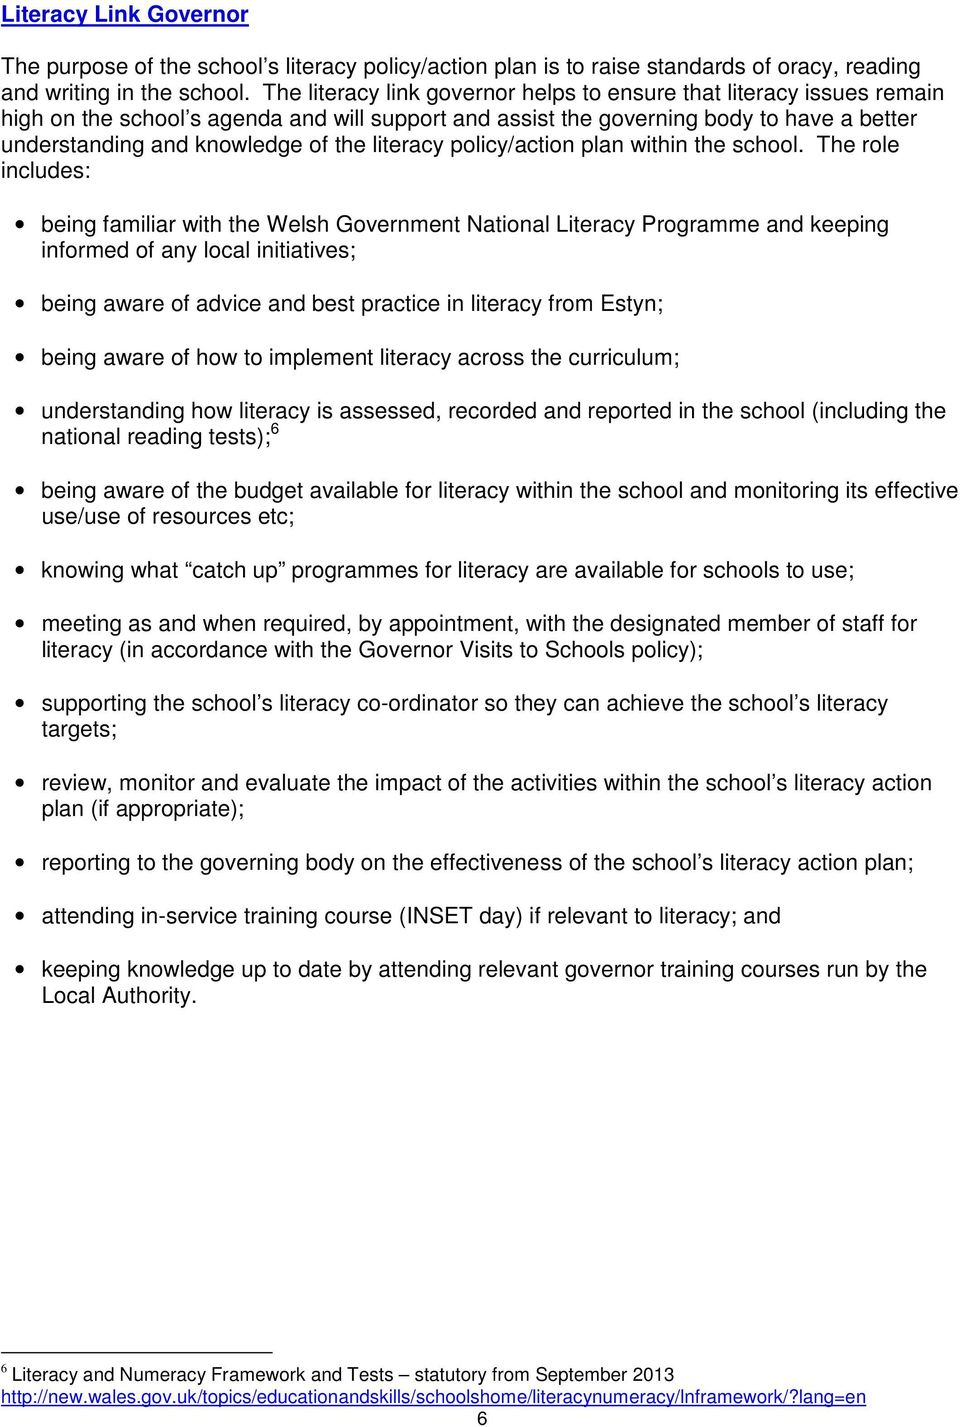 literacy policy/action plan within the school.